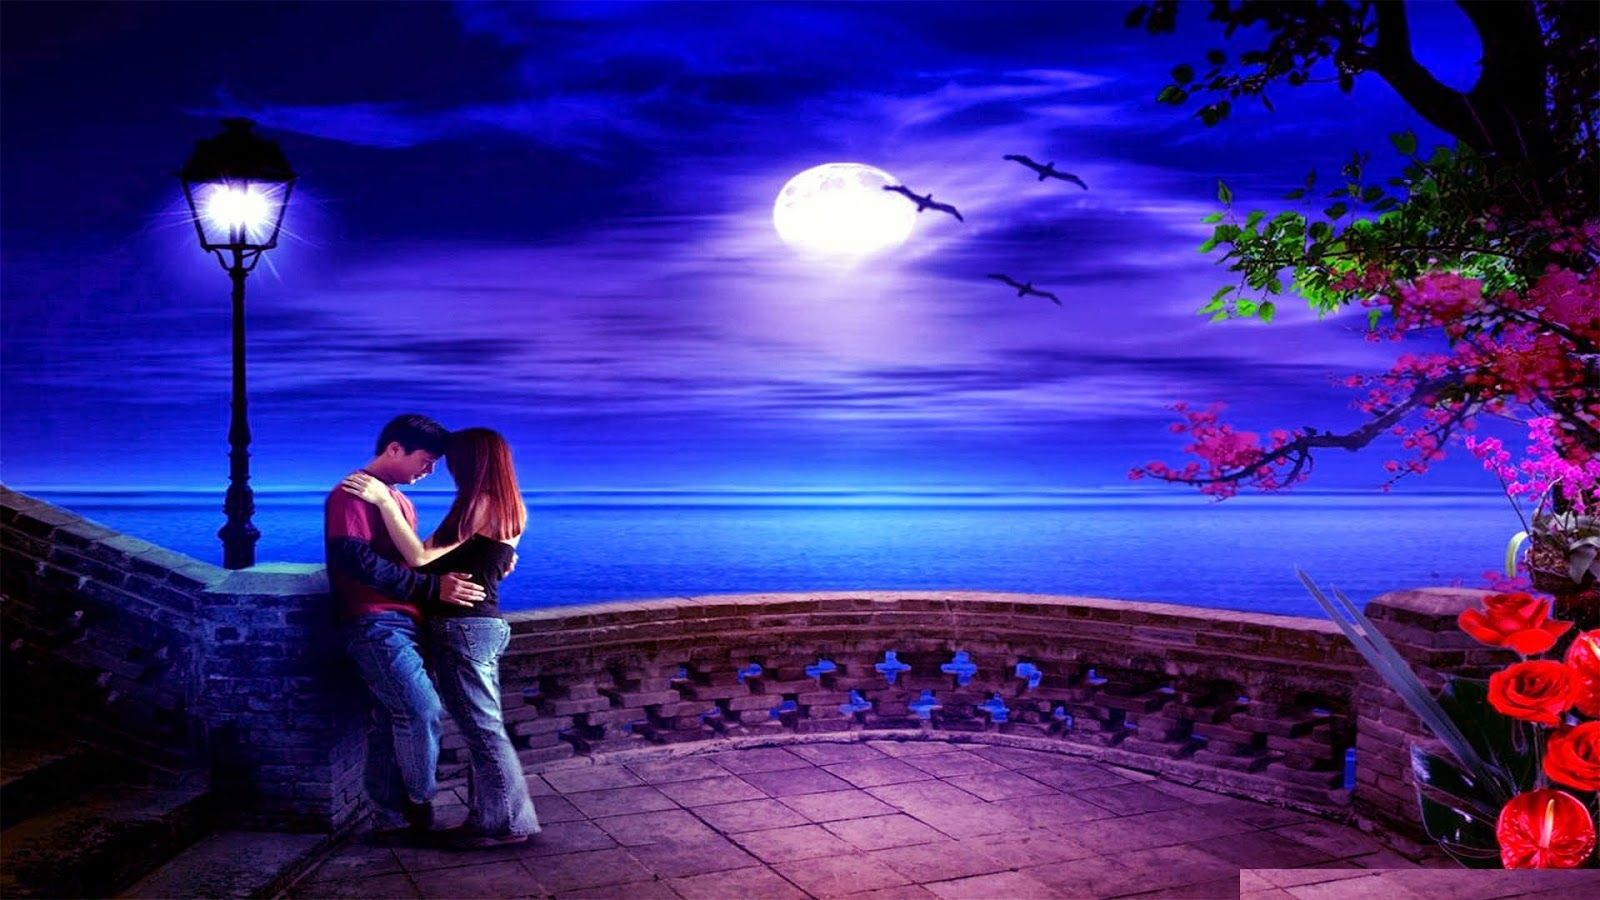 3d Wallpaper Romantic